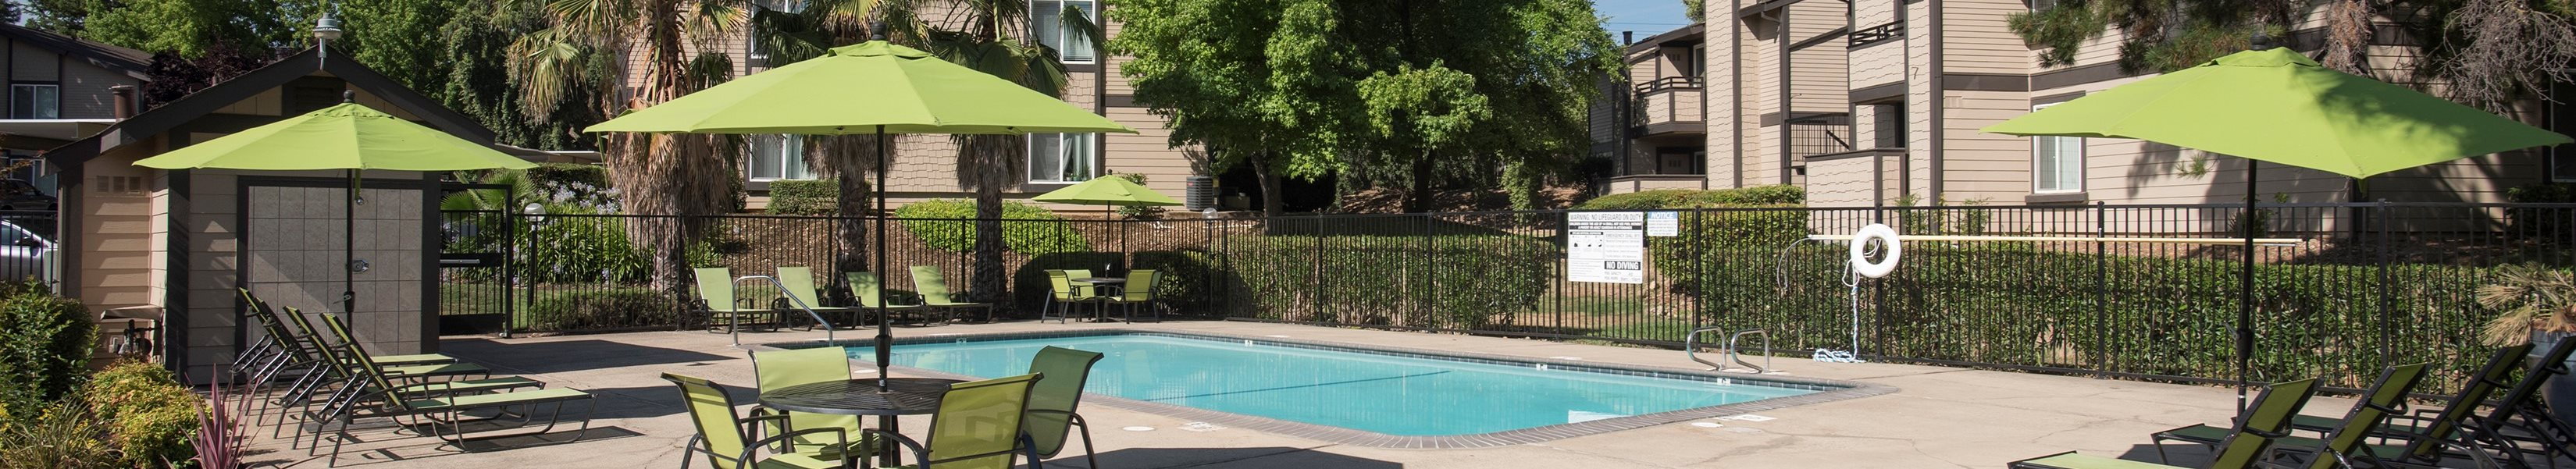 Pool Area Header Image